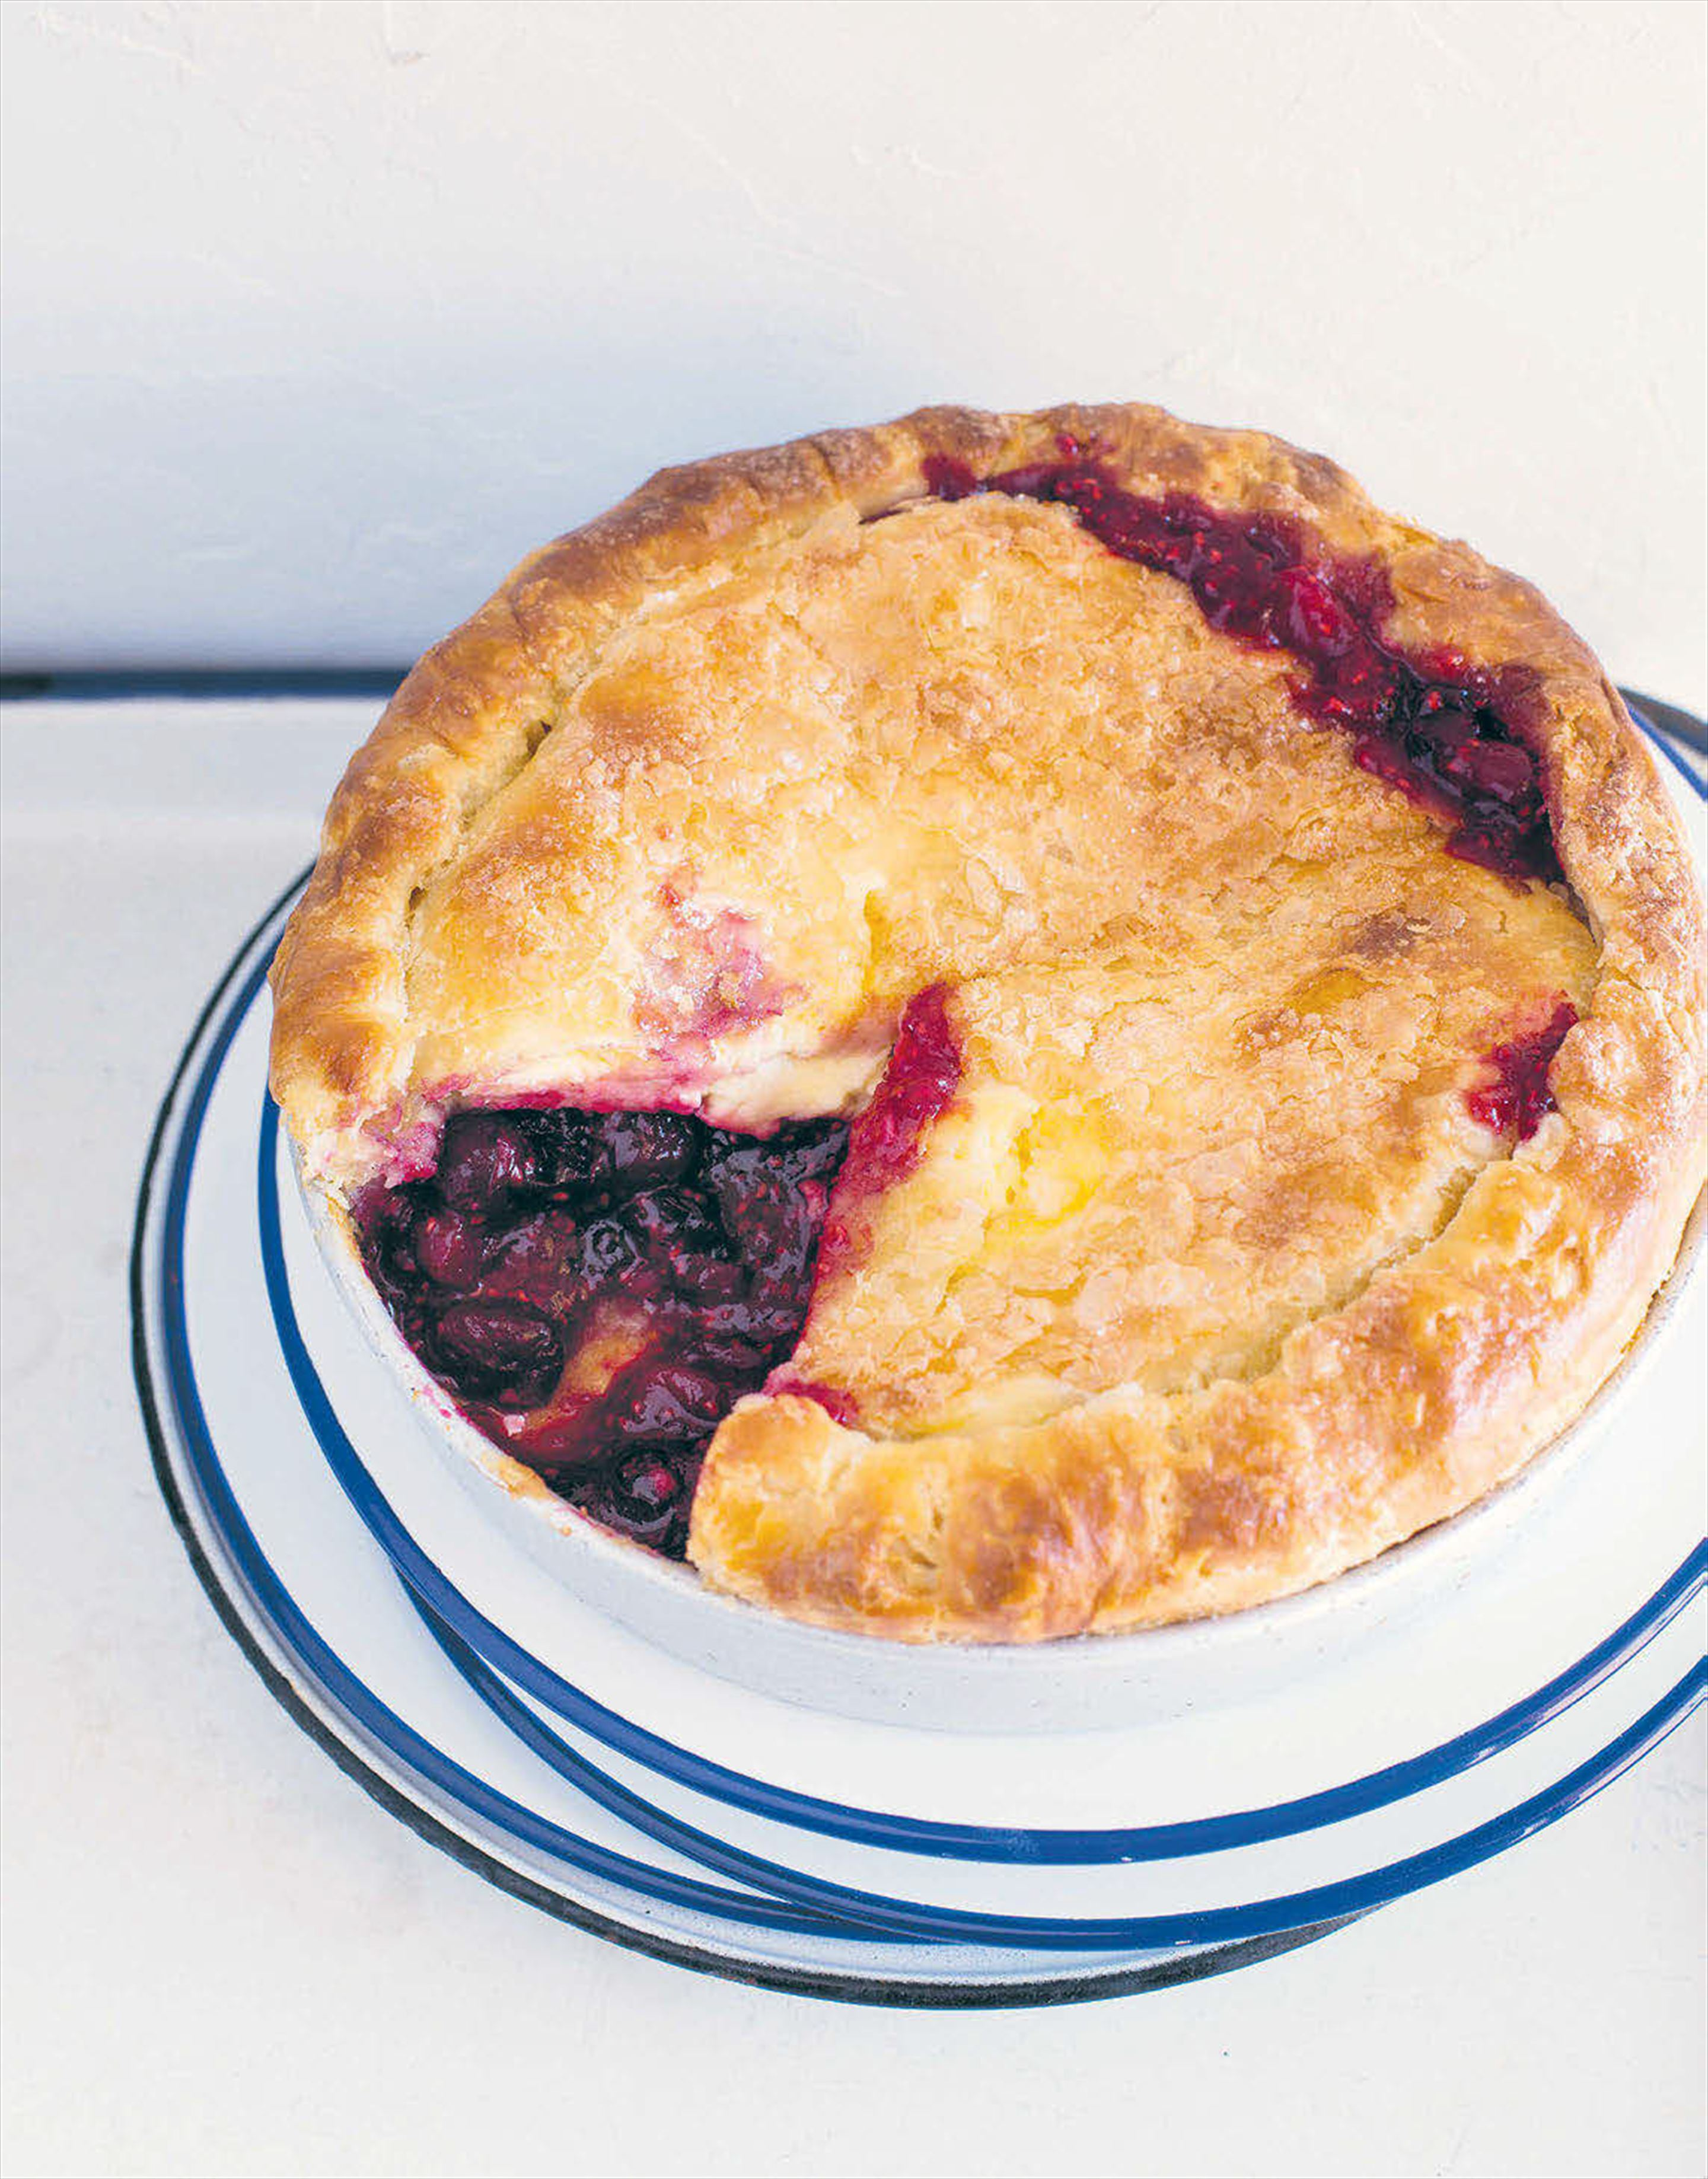 Berry, ginger and sour cream pie